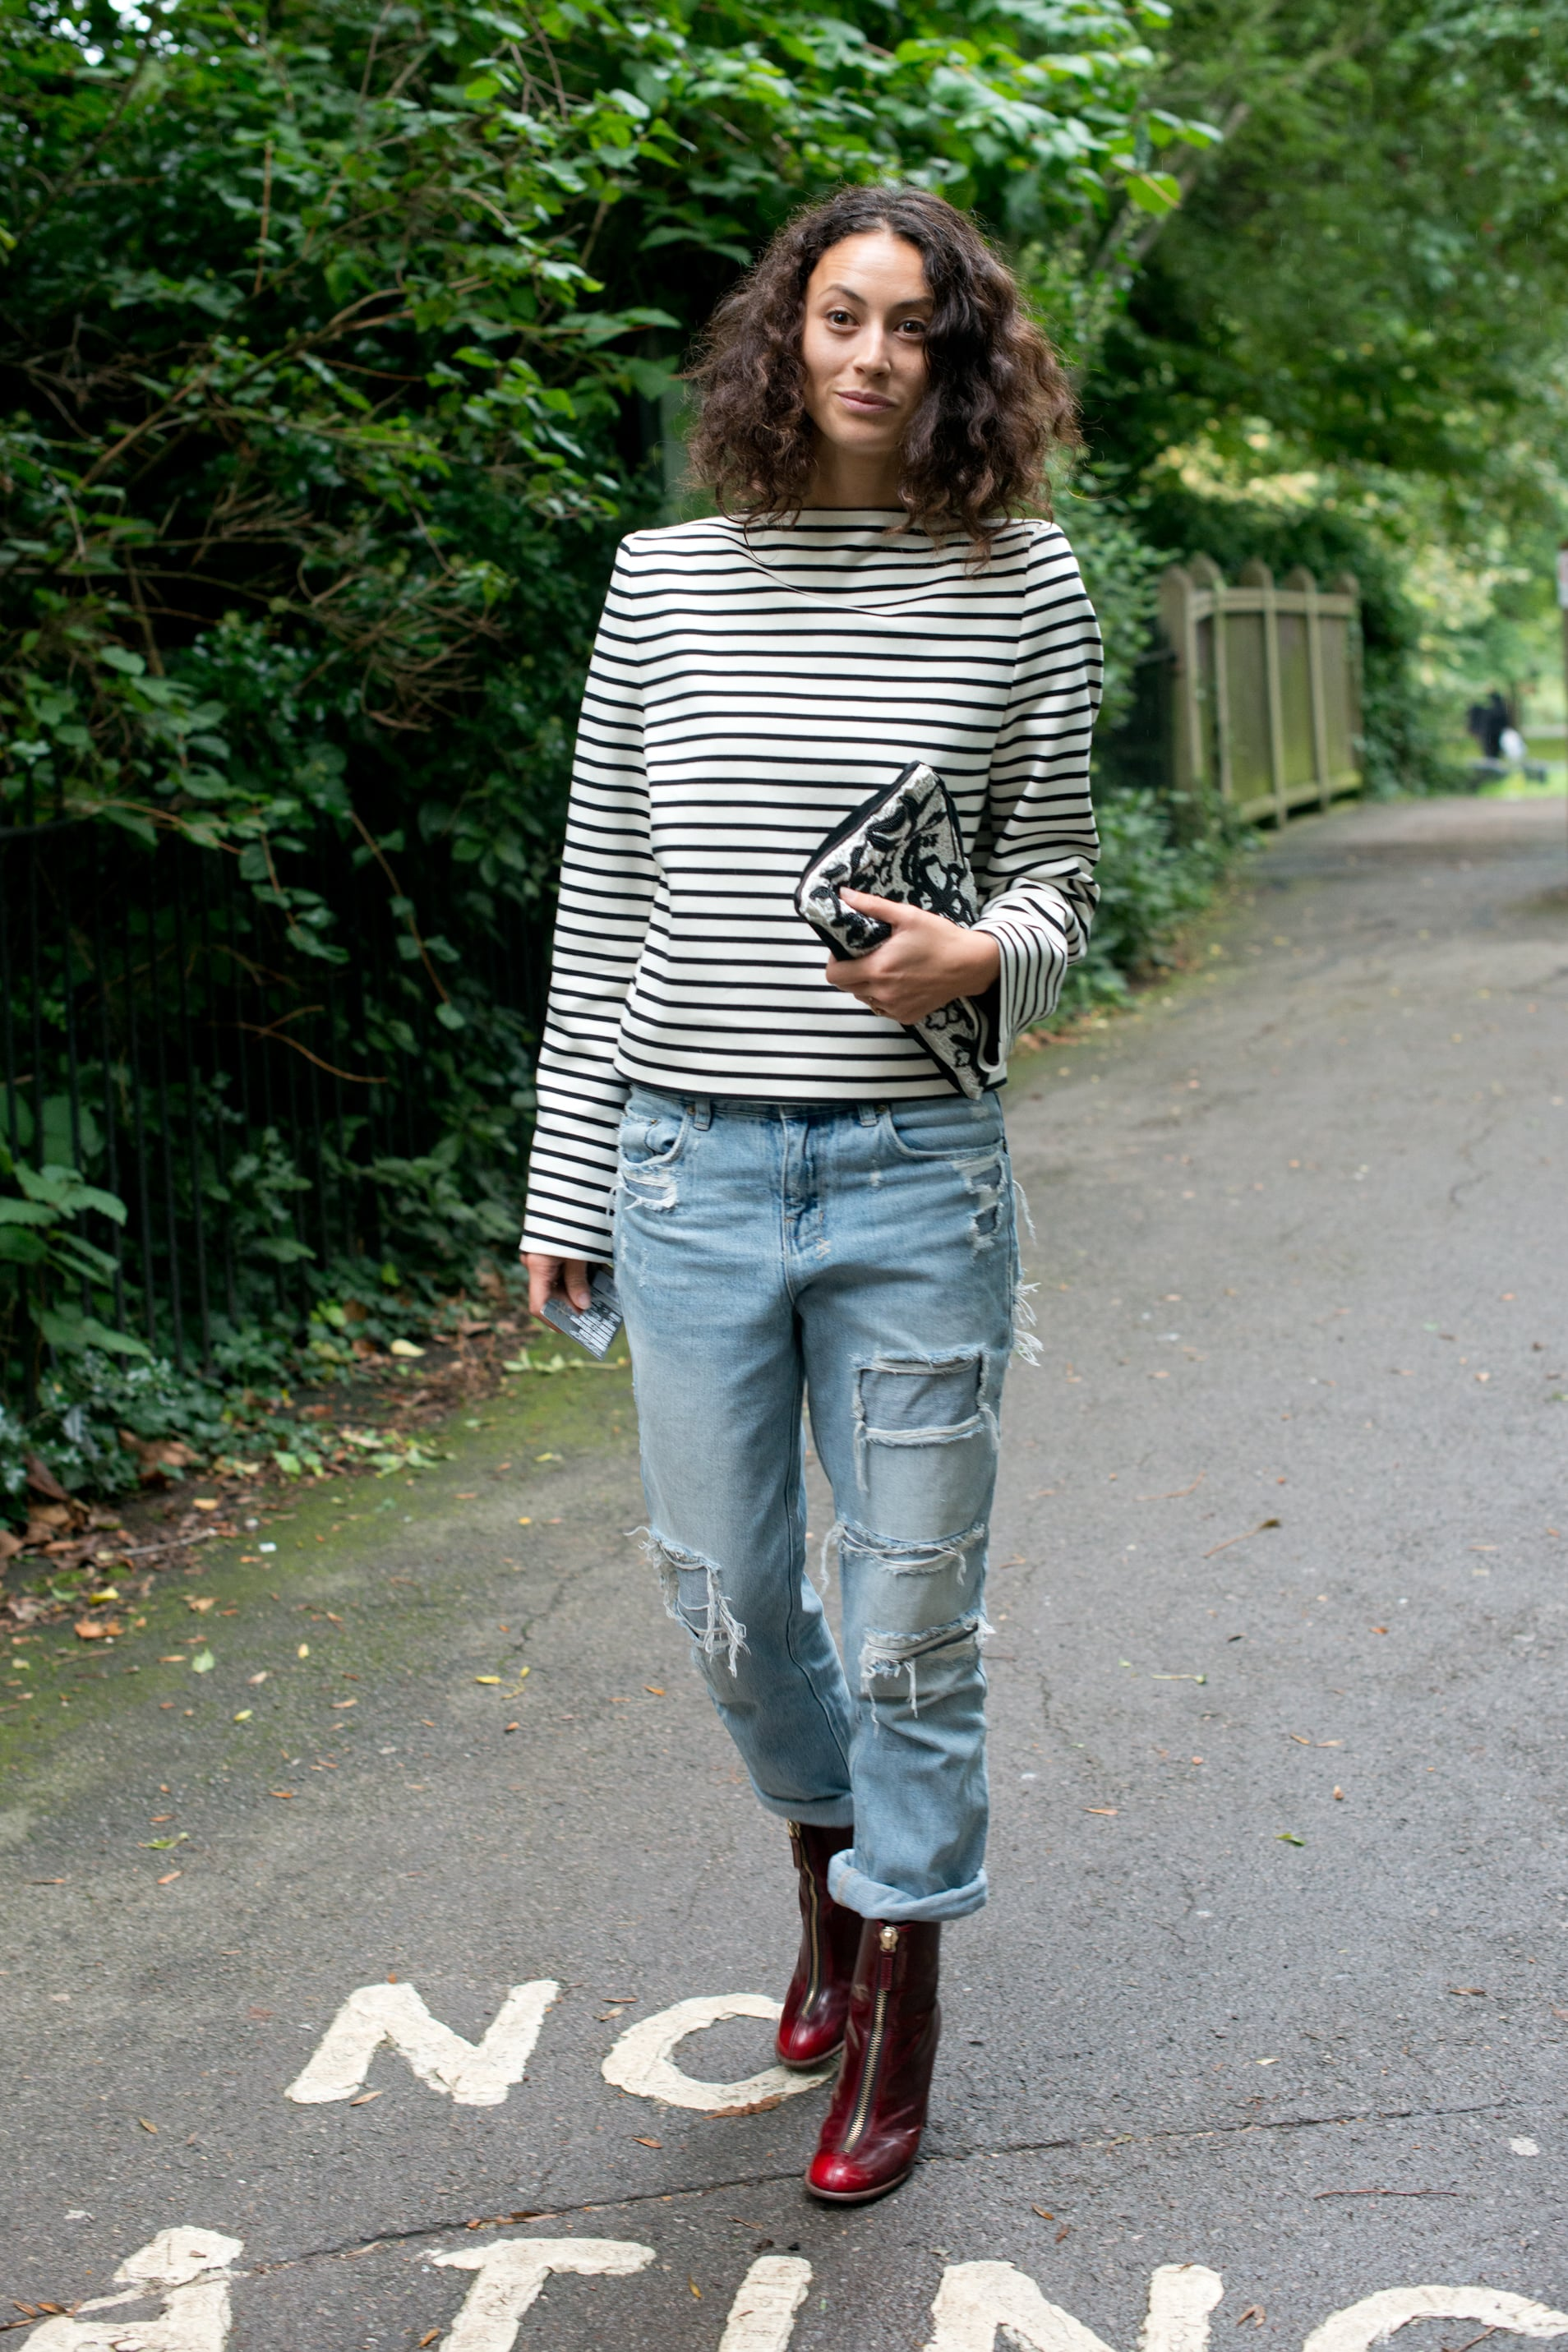 The top and jeans might have been totally casual, if not for the addition of an embroidered clutch and a pair of burgundy boots.